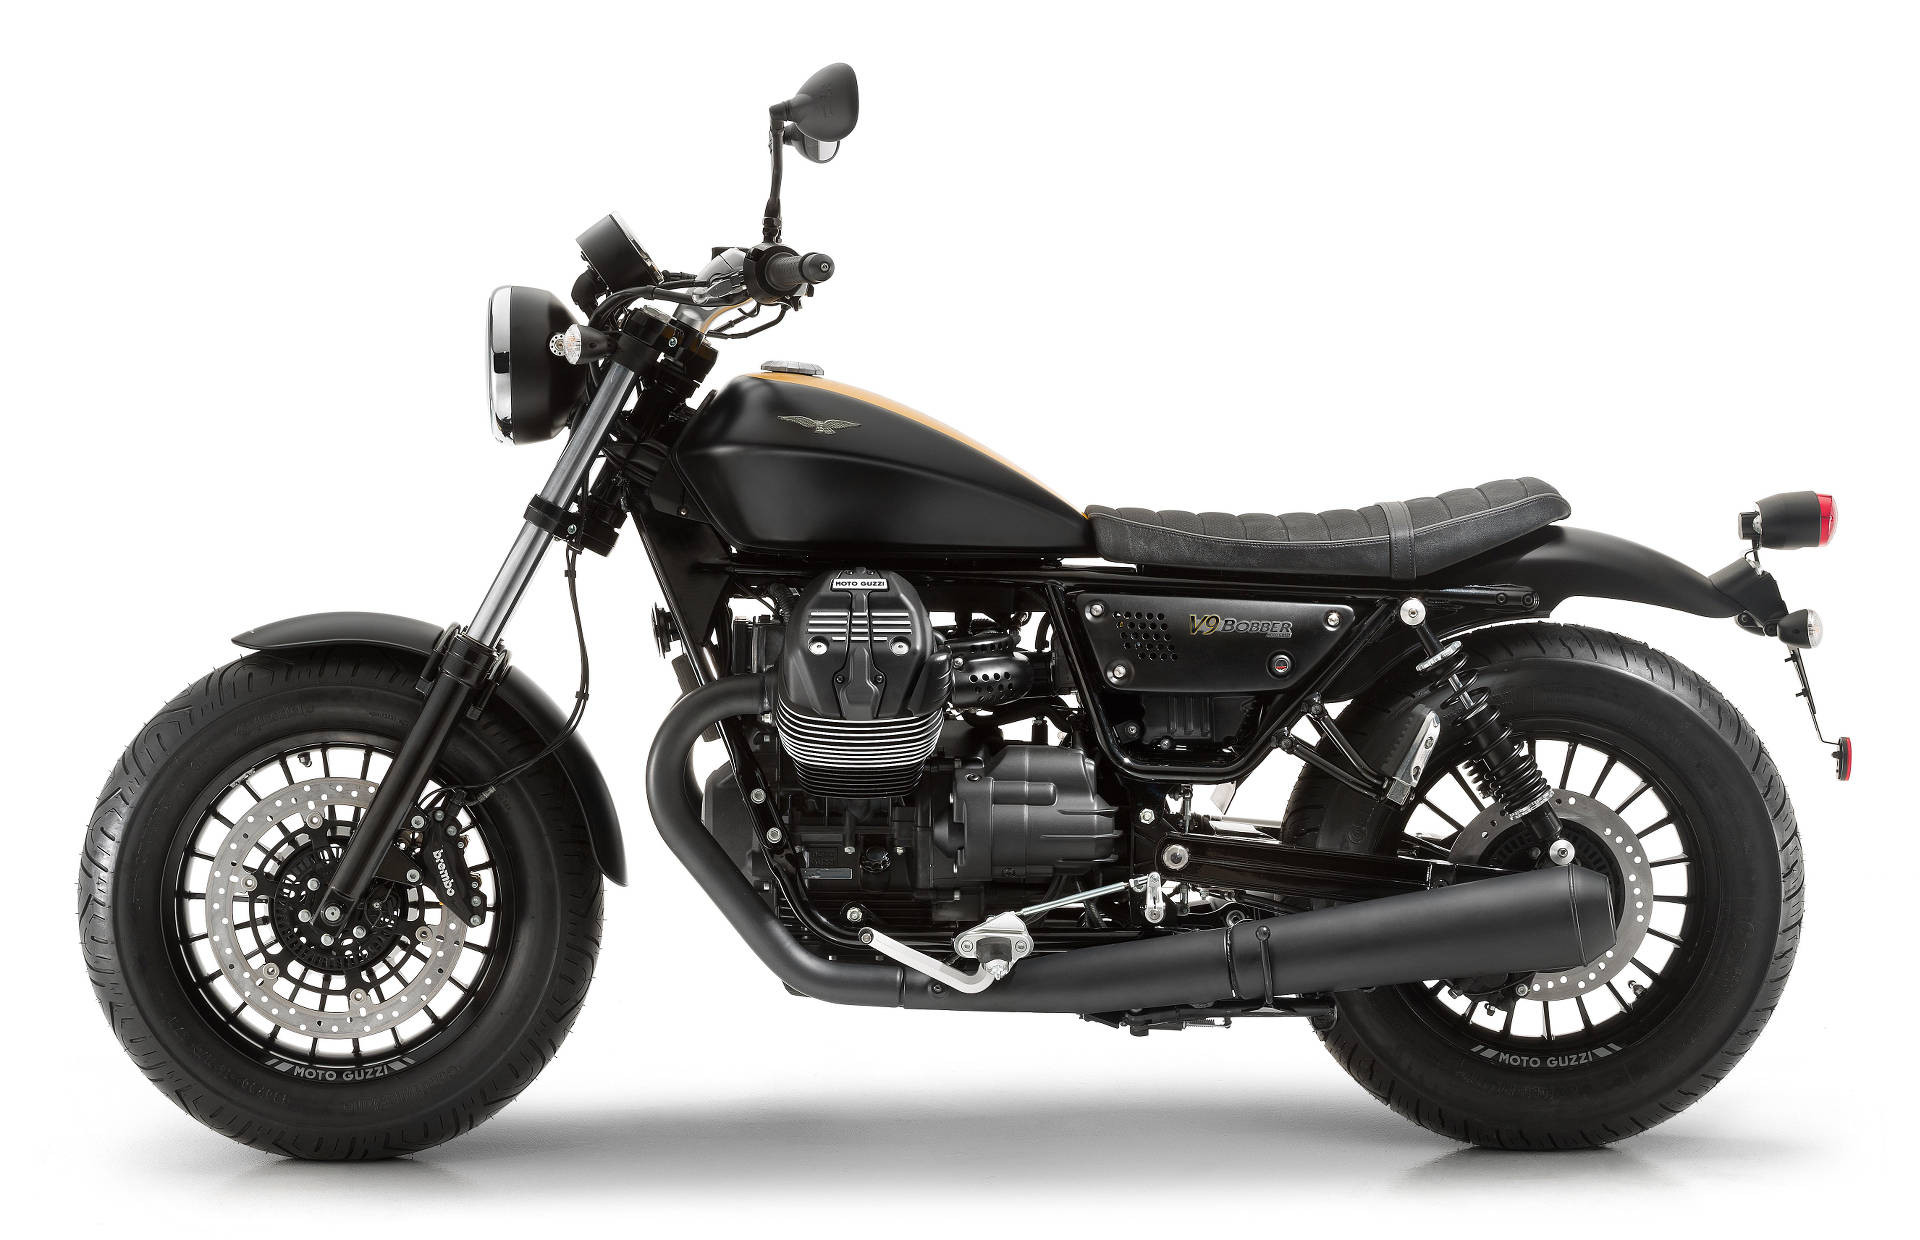 new moto guzzi v9 roamer and bobber feature 850cc v twin motorcycle news. Black Bedroom Furniture Sets. Home Design Ideas